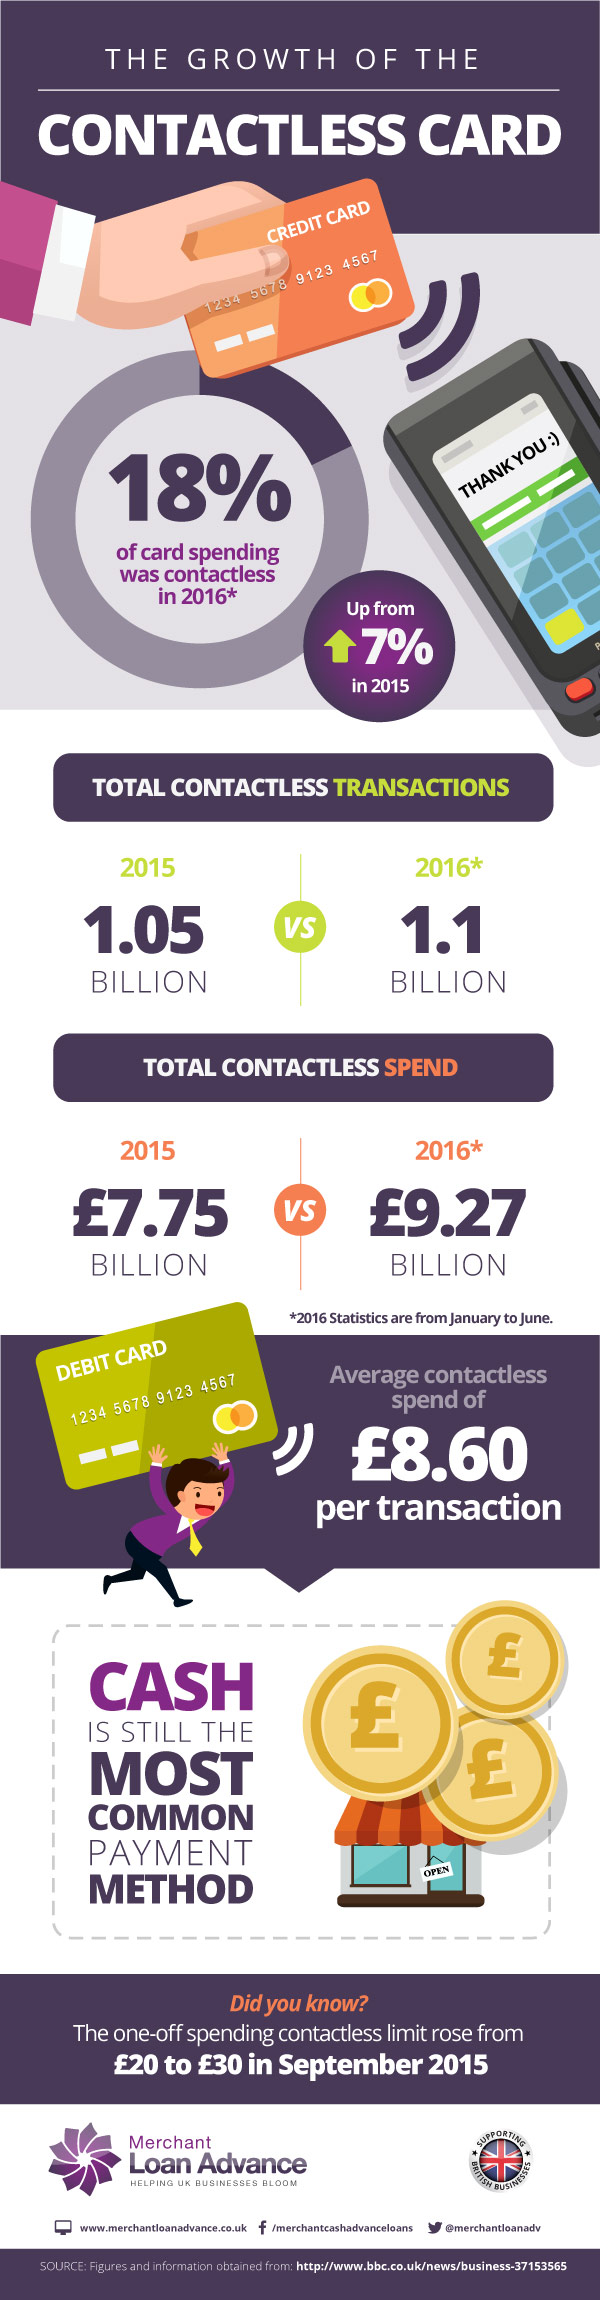 Infographic: The Growth Of The Contactless Card